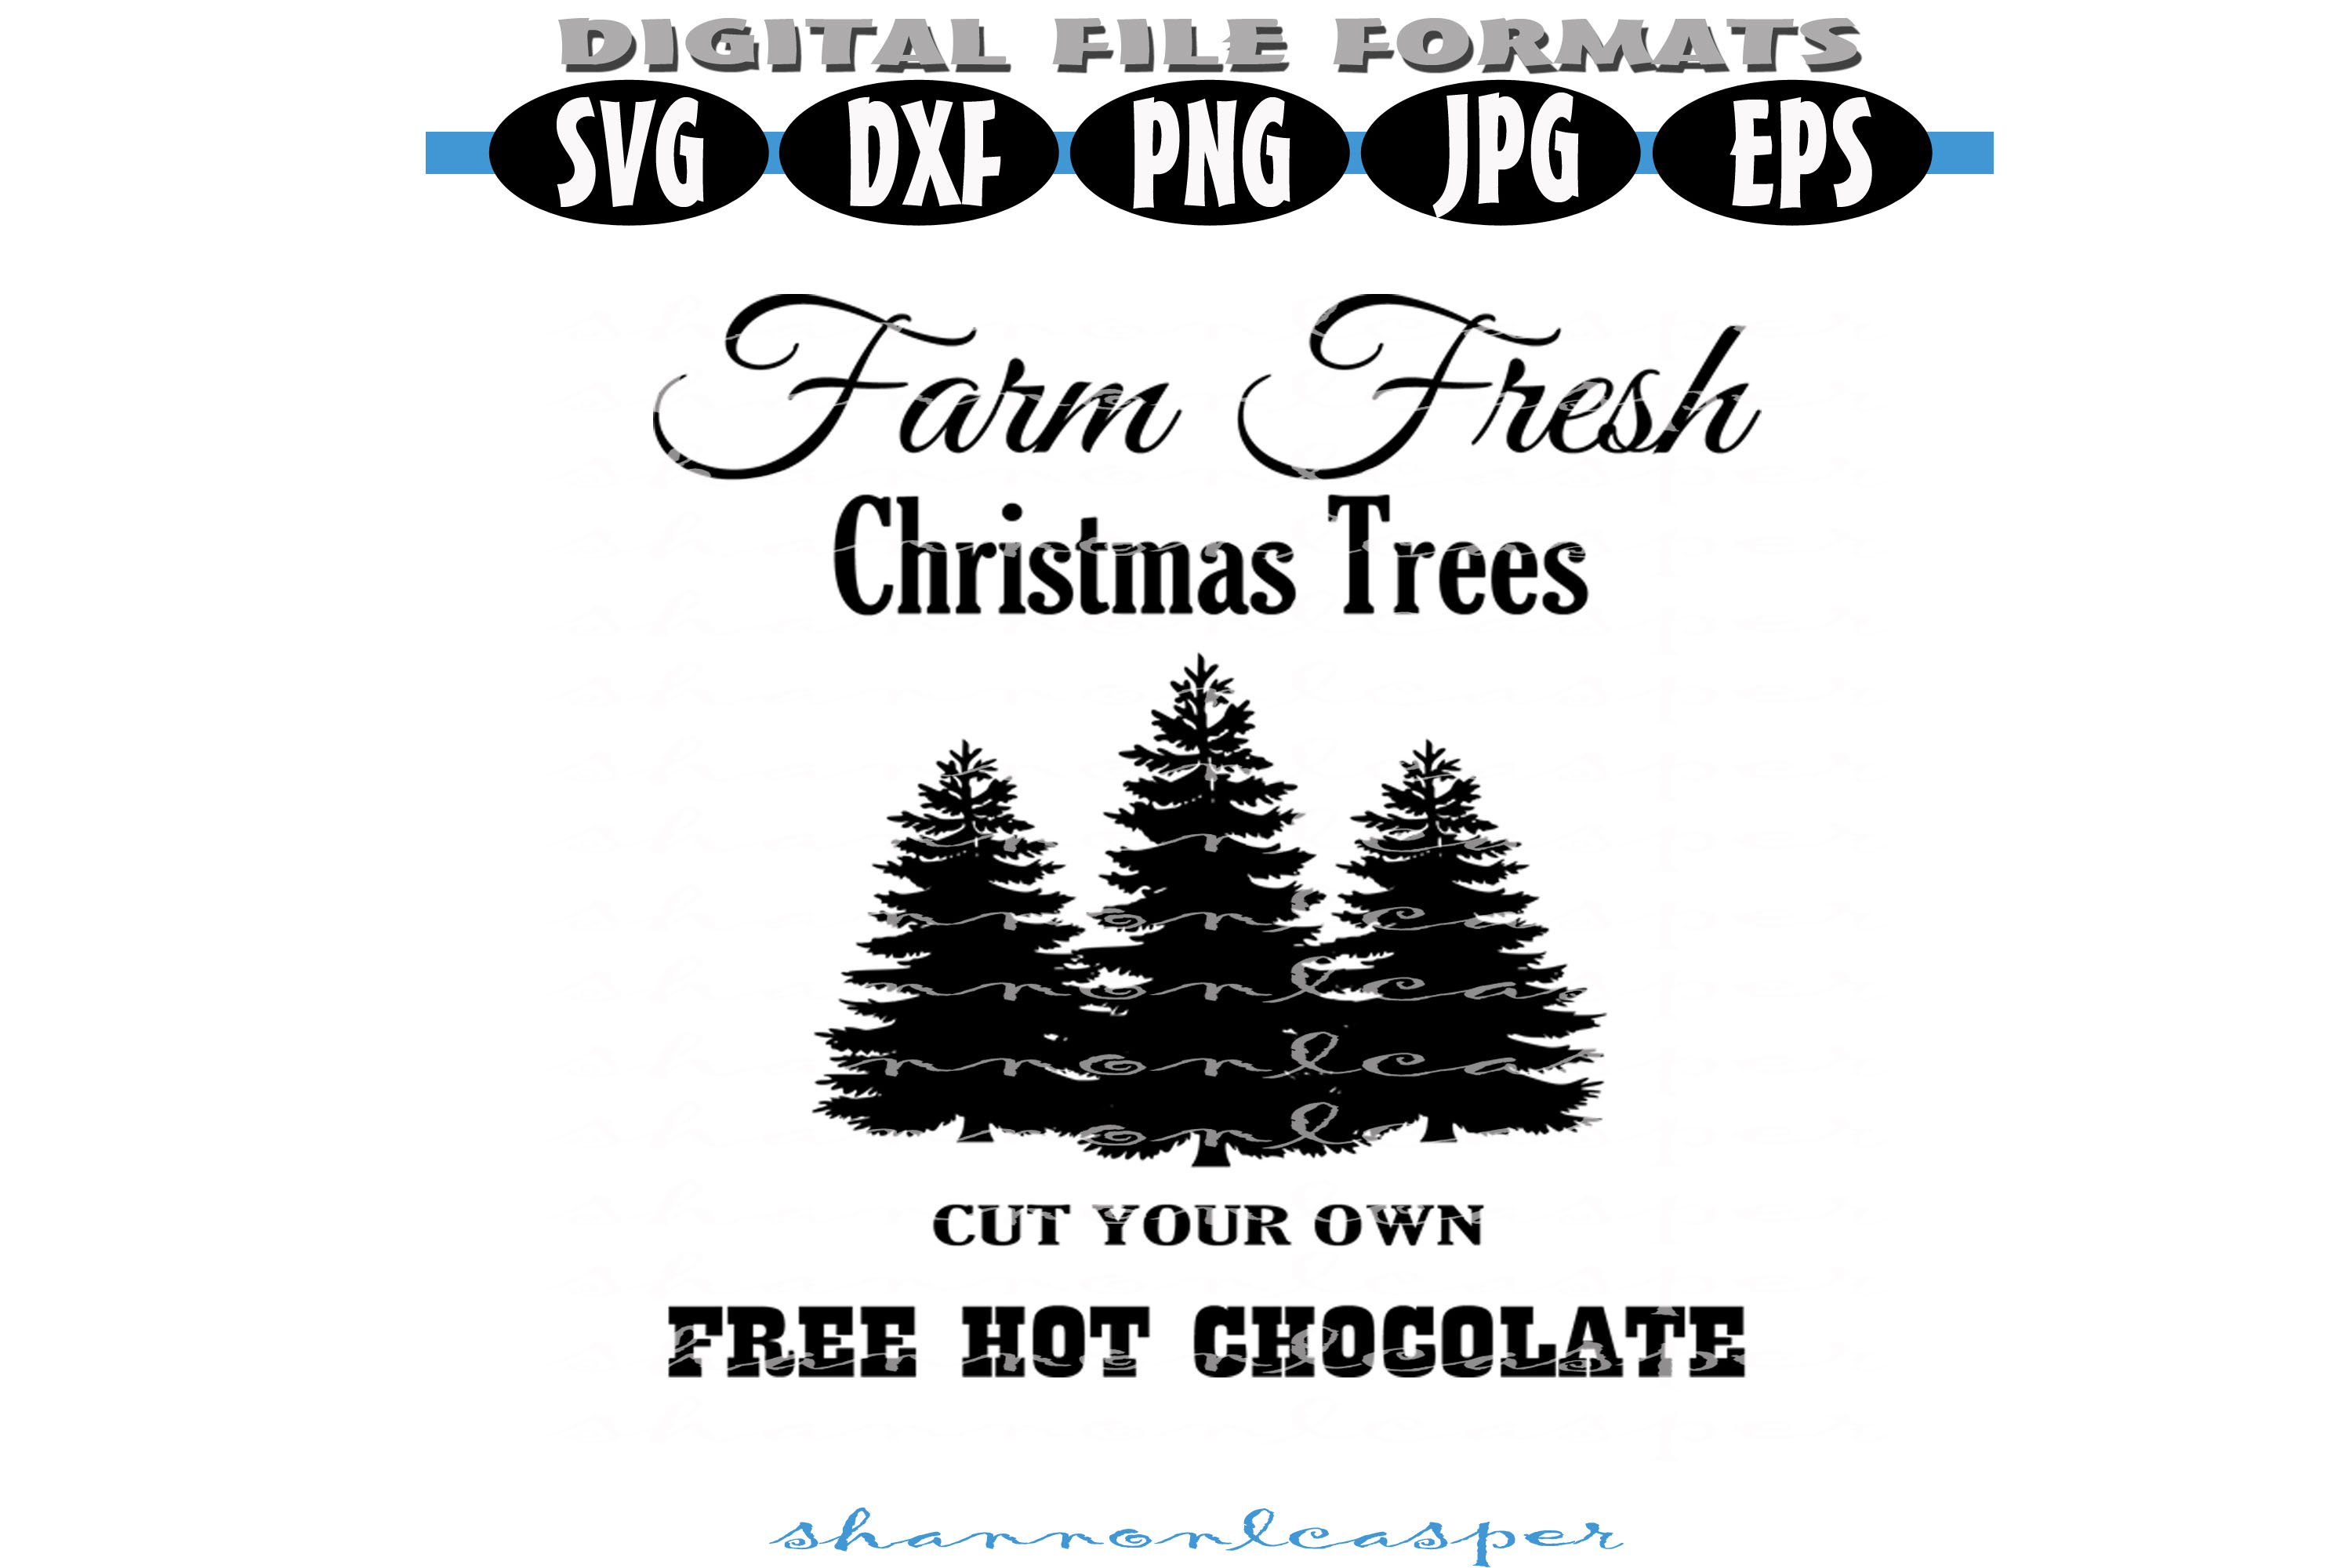 Download Free Fresh Farm Trees Graphic By Shannon Casper Creative Fabrica for Cricut Explore, Silhouette and other cutting machines.